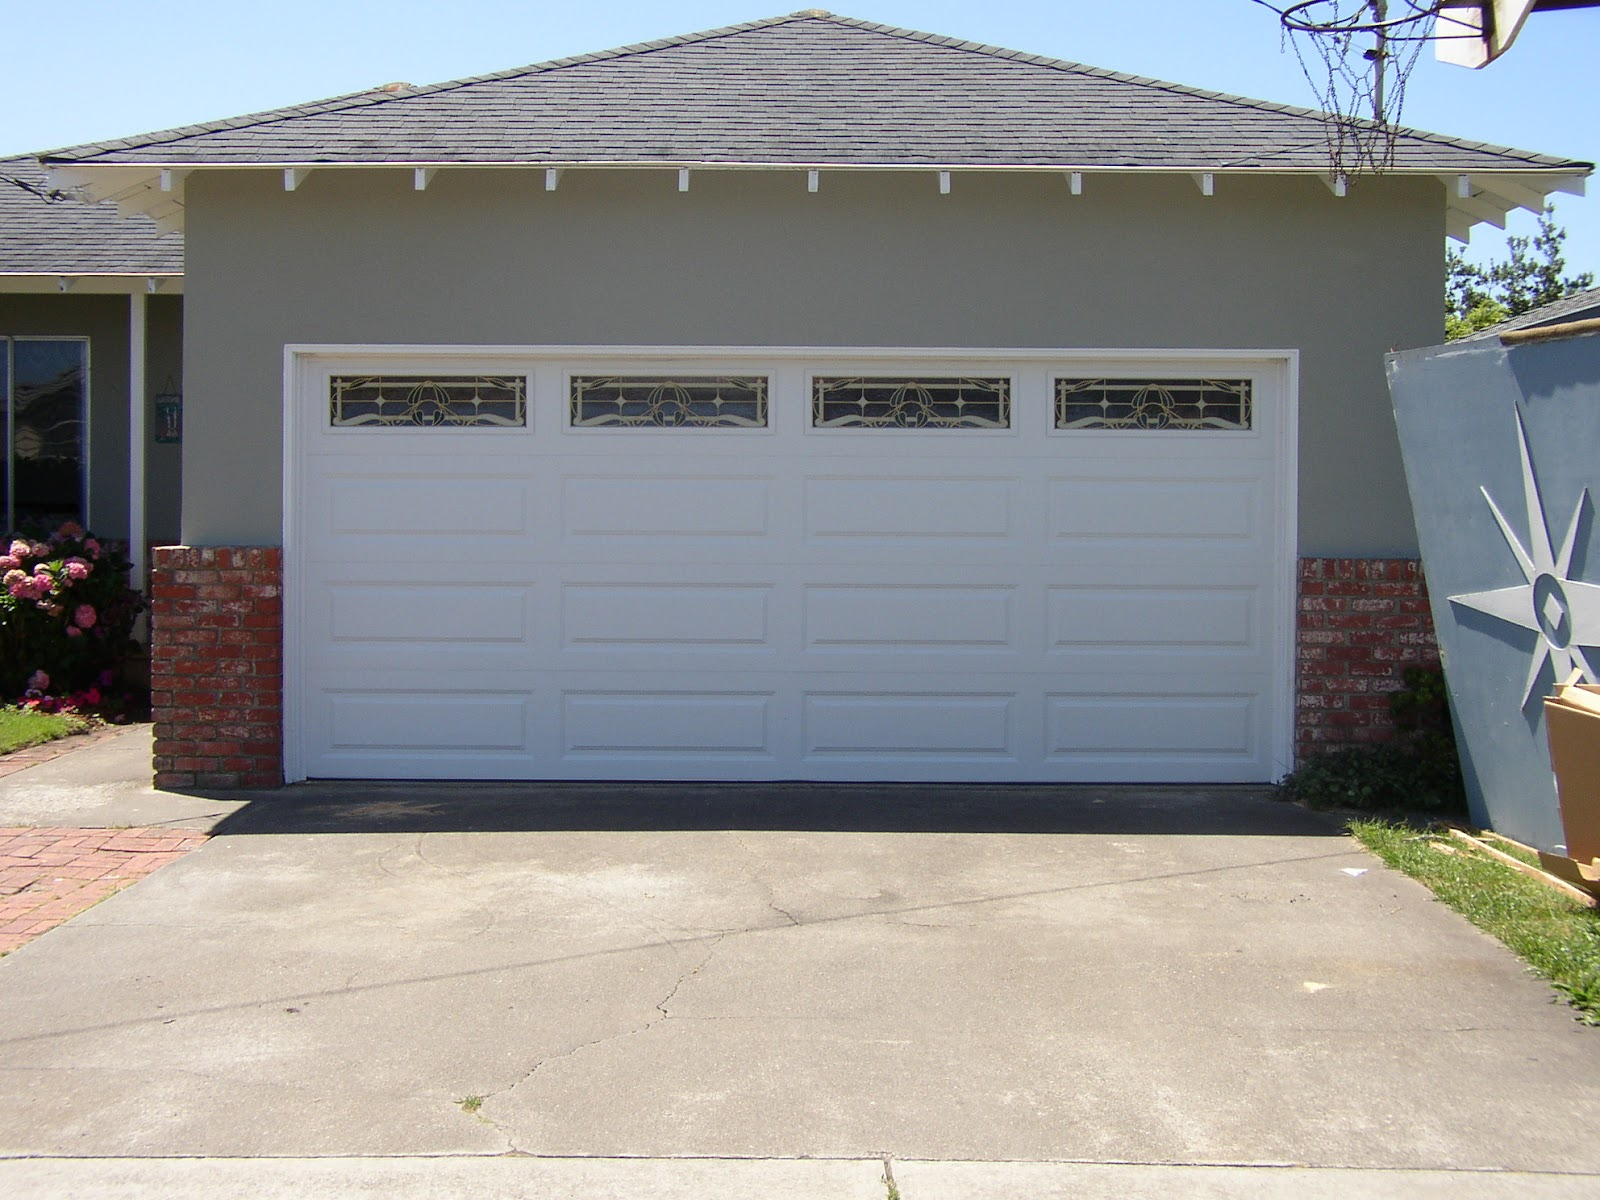 1200 #3A6991 Gainesville Garage DoorGainesville Garage Door picture/photo Garages Doors 36391600